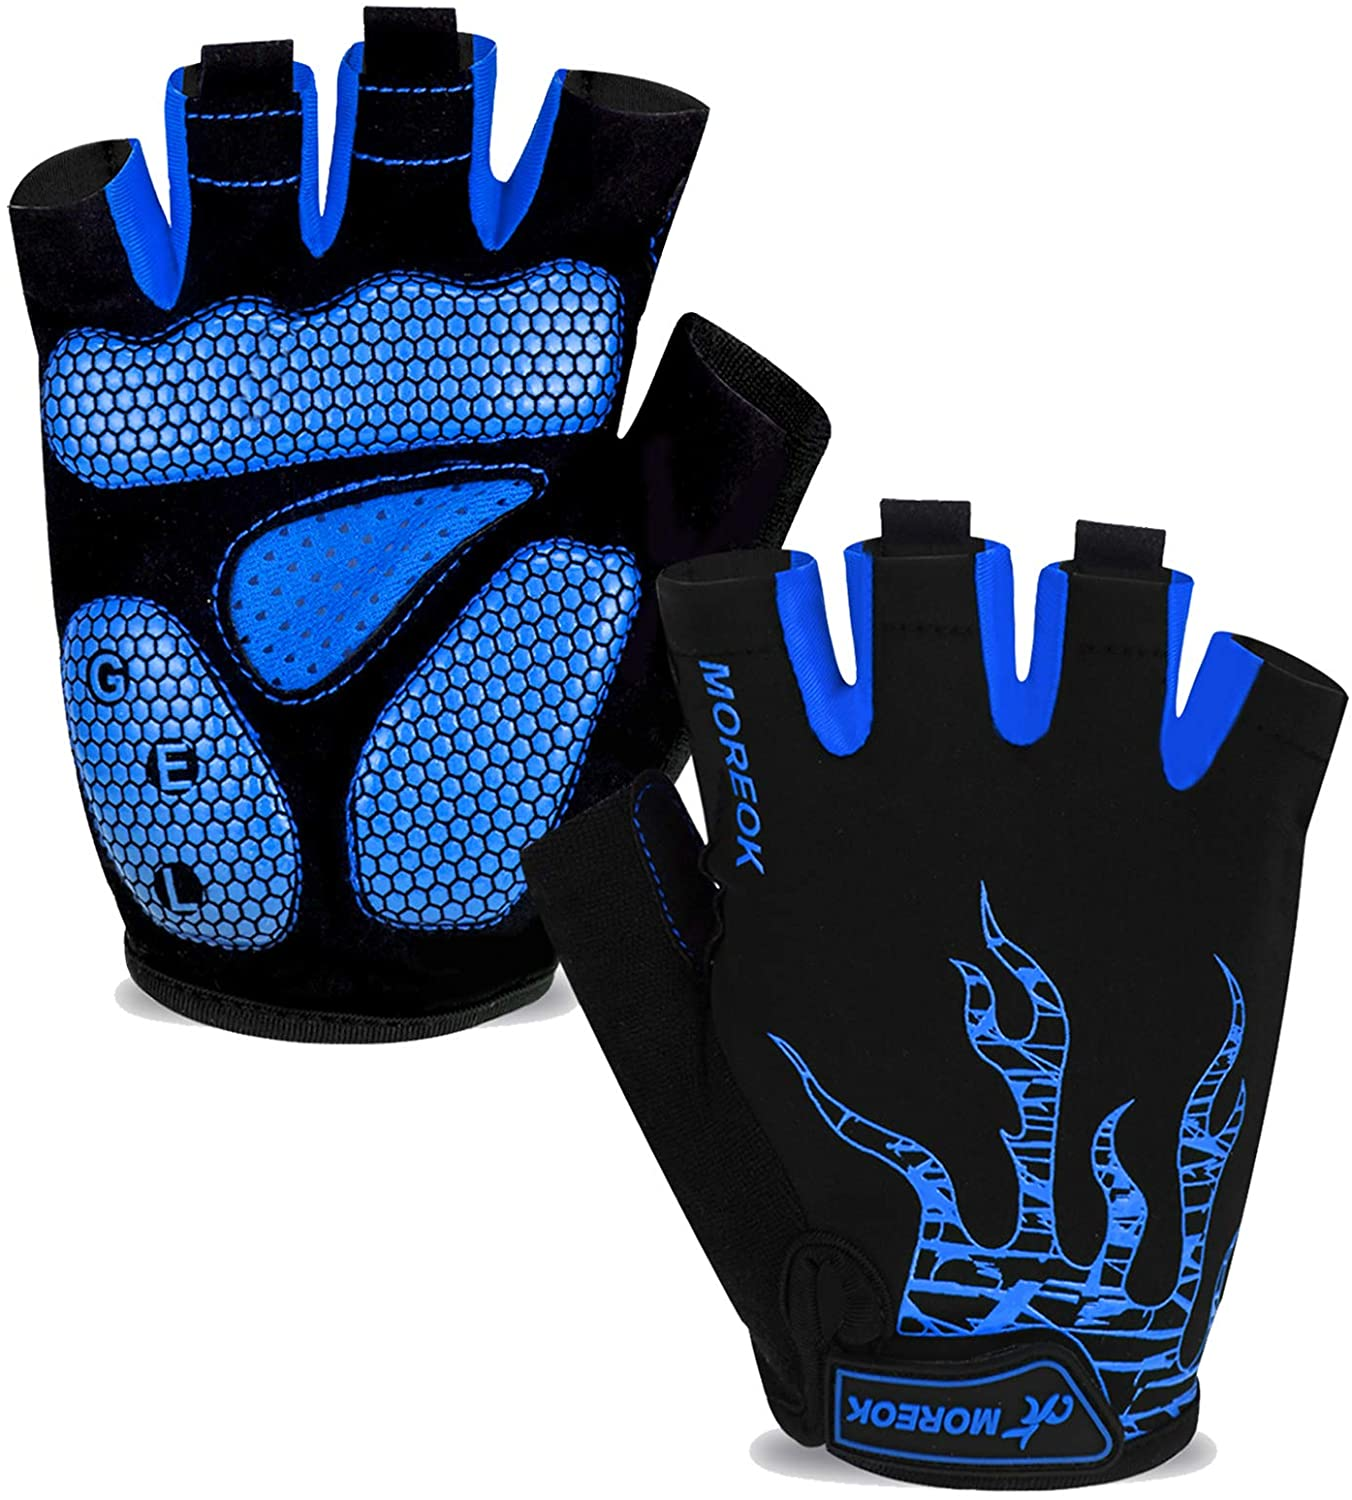 moreok mens cycling gloves black color